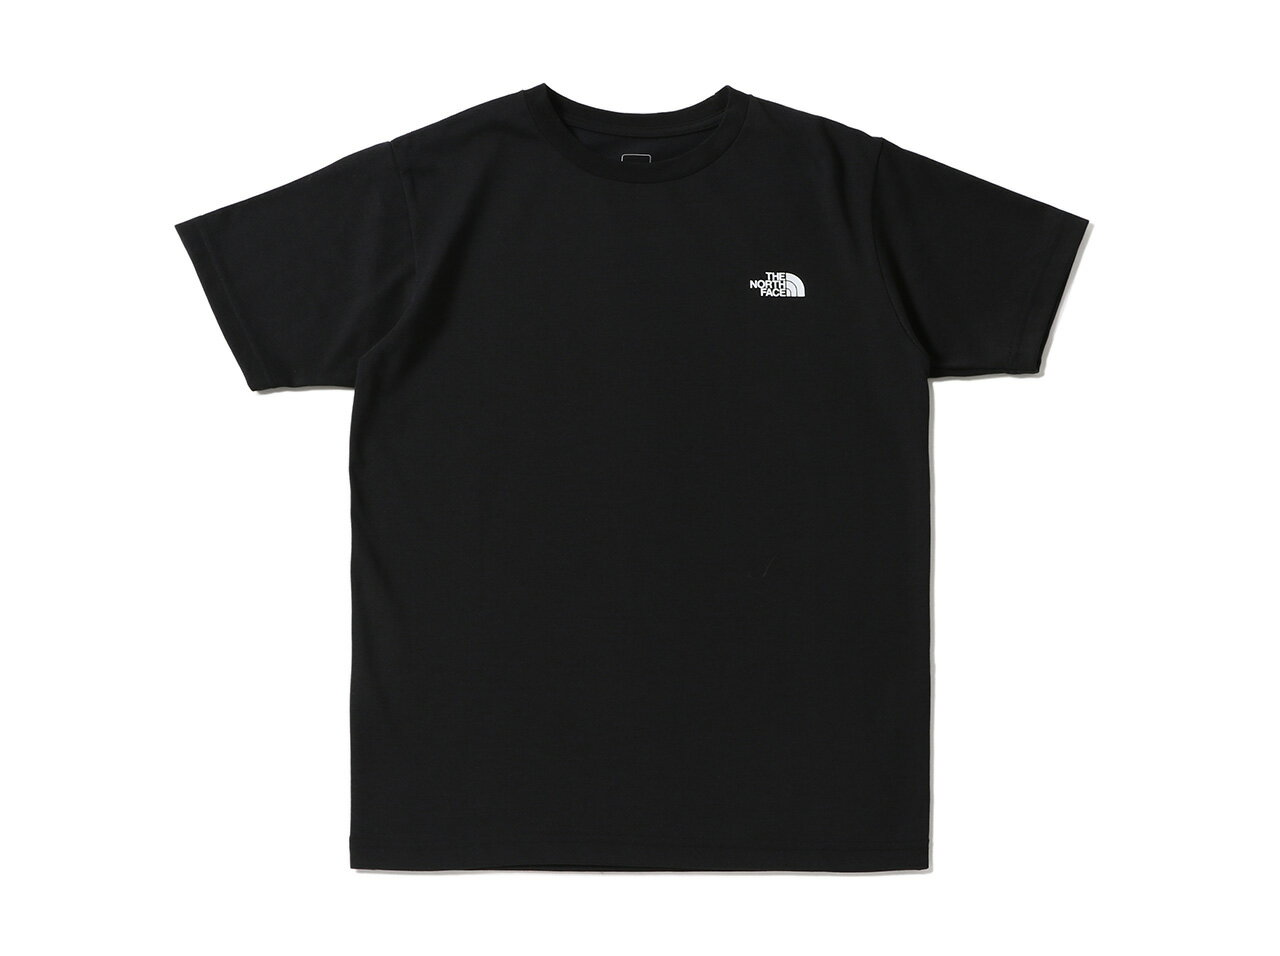 トップス, Tシャツ・カットソー 10OFF!THE NORTH FACE SS Square Logo Tee(NT32038) T